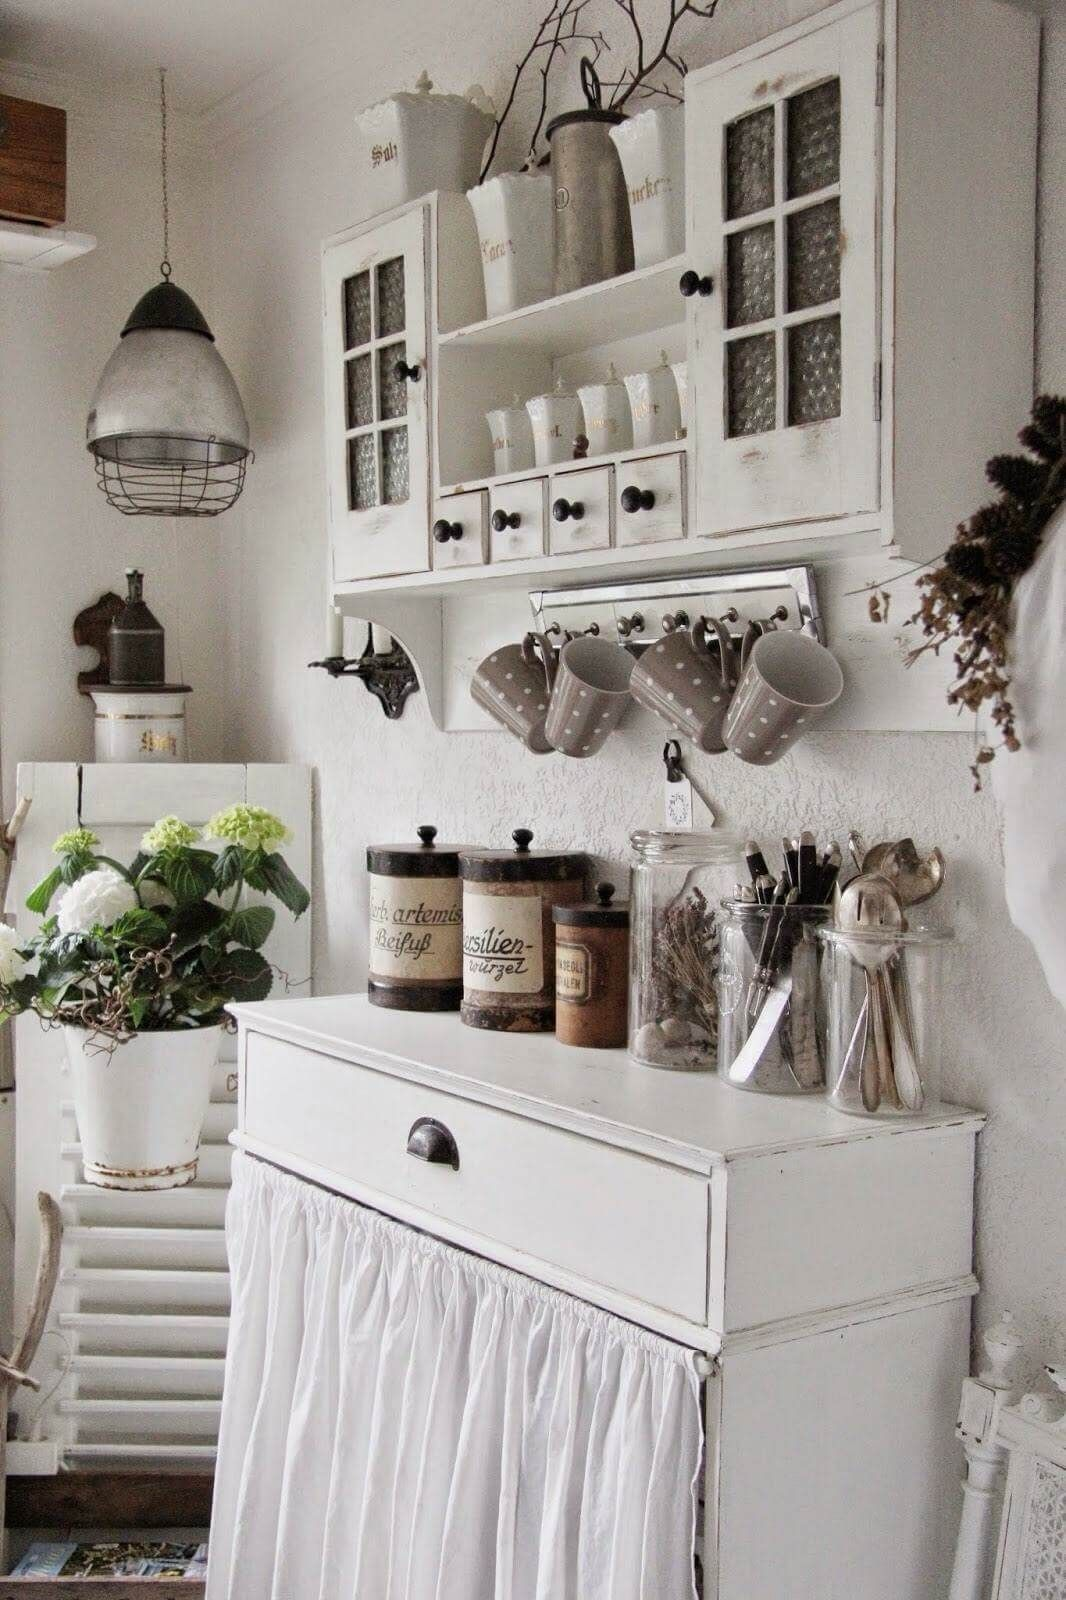 29 Gorgeous Shabby Chic Kitchen Decor Ideas That Are Comfy Cozy And Sweet Wohnen Shabby Chic Kuche Dekor